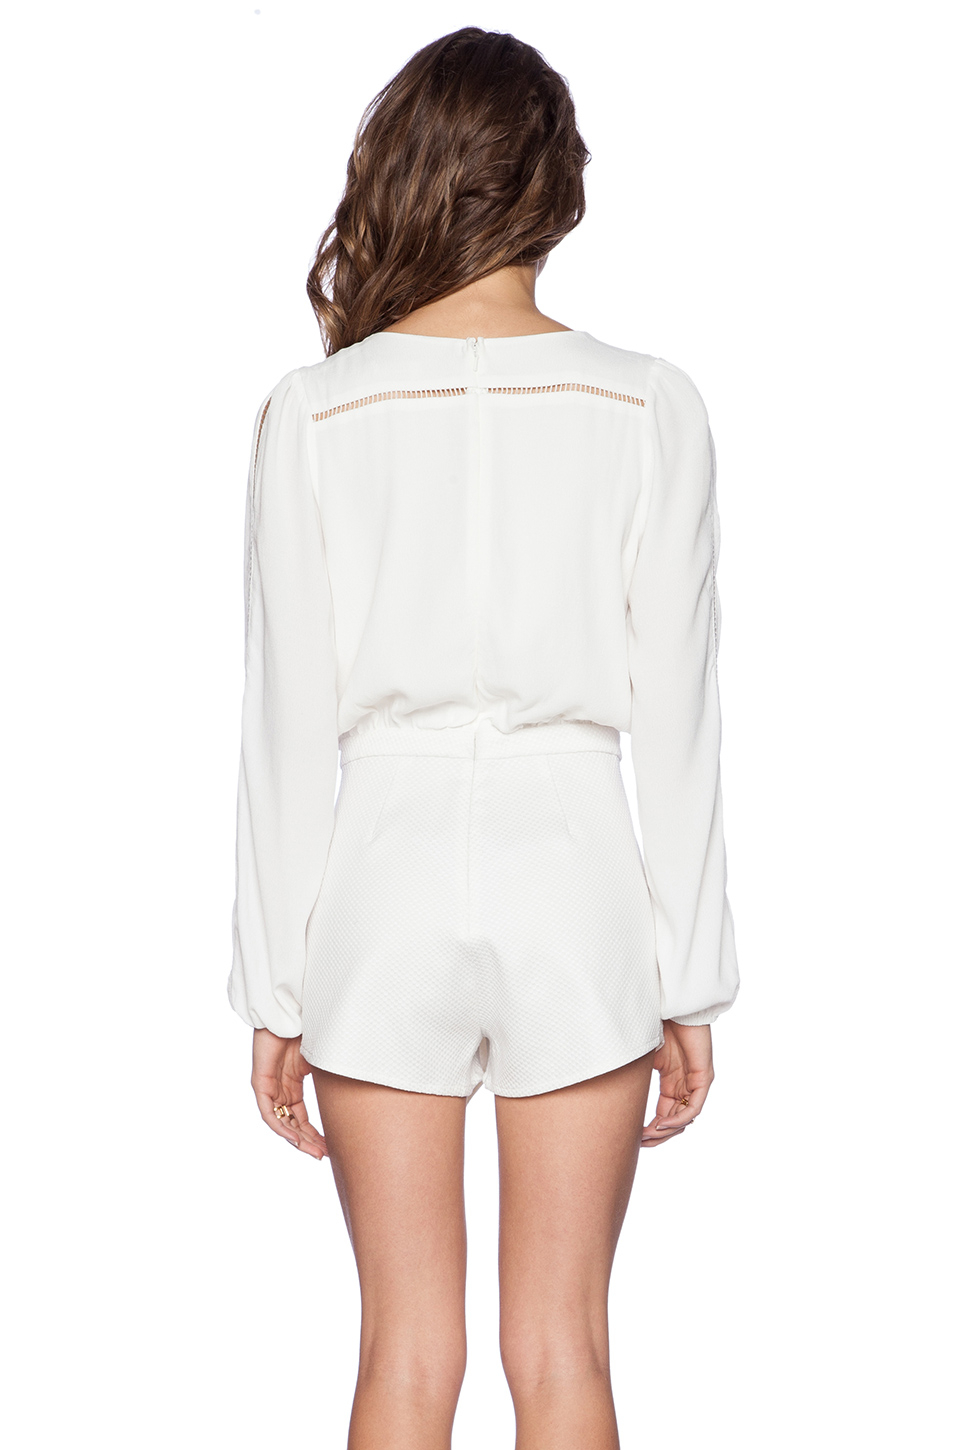 daab56dac8a3 Lyst - Lovers + Friends Radiance Wrap Romper in White